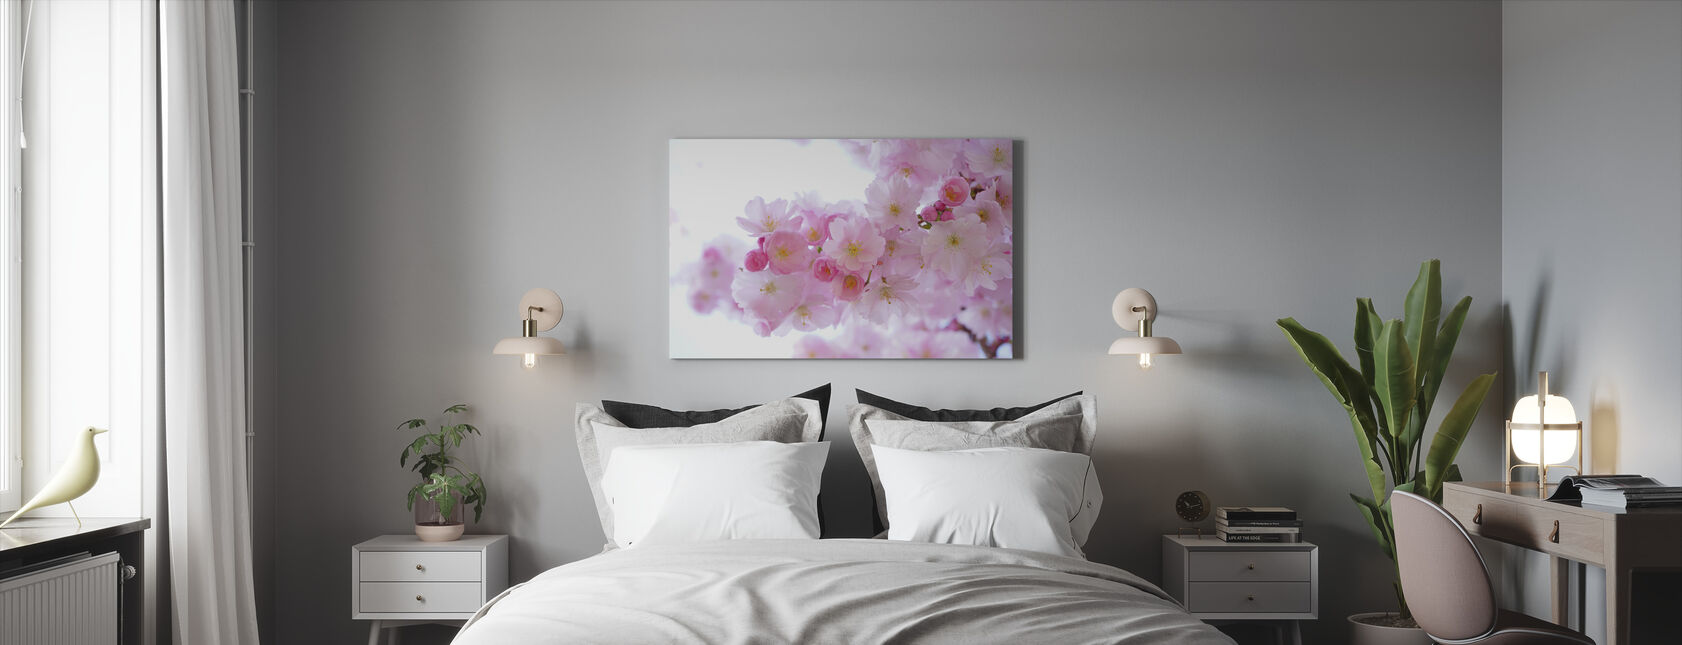 Blossom Cherry Flowers - Canvas print - Bedroom